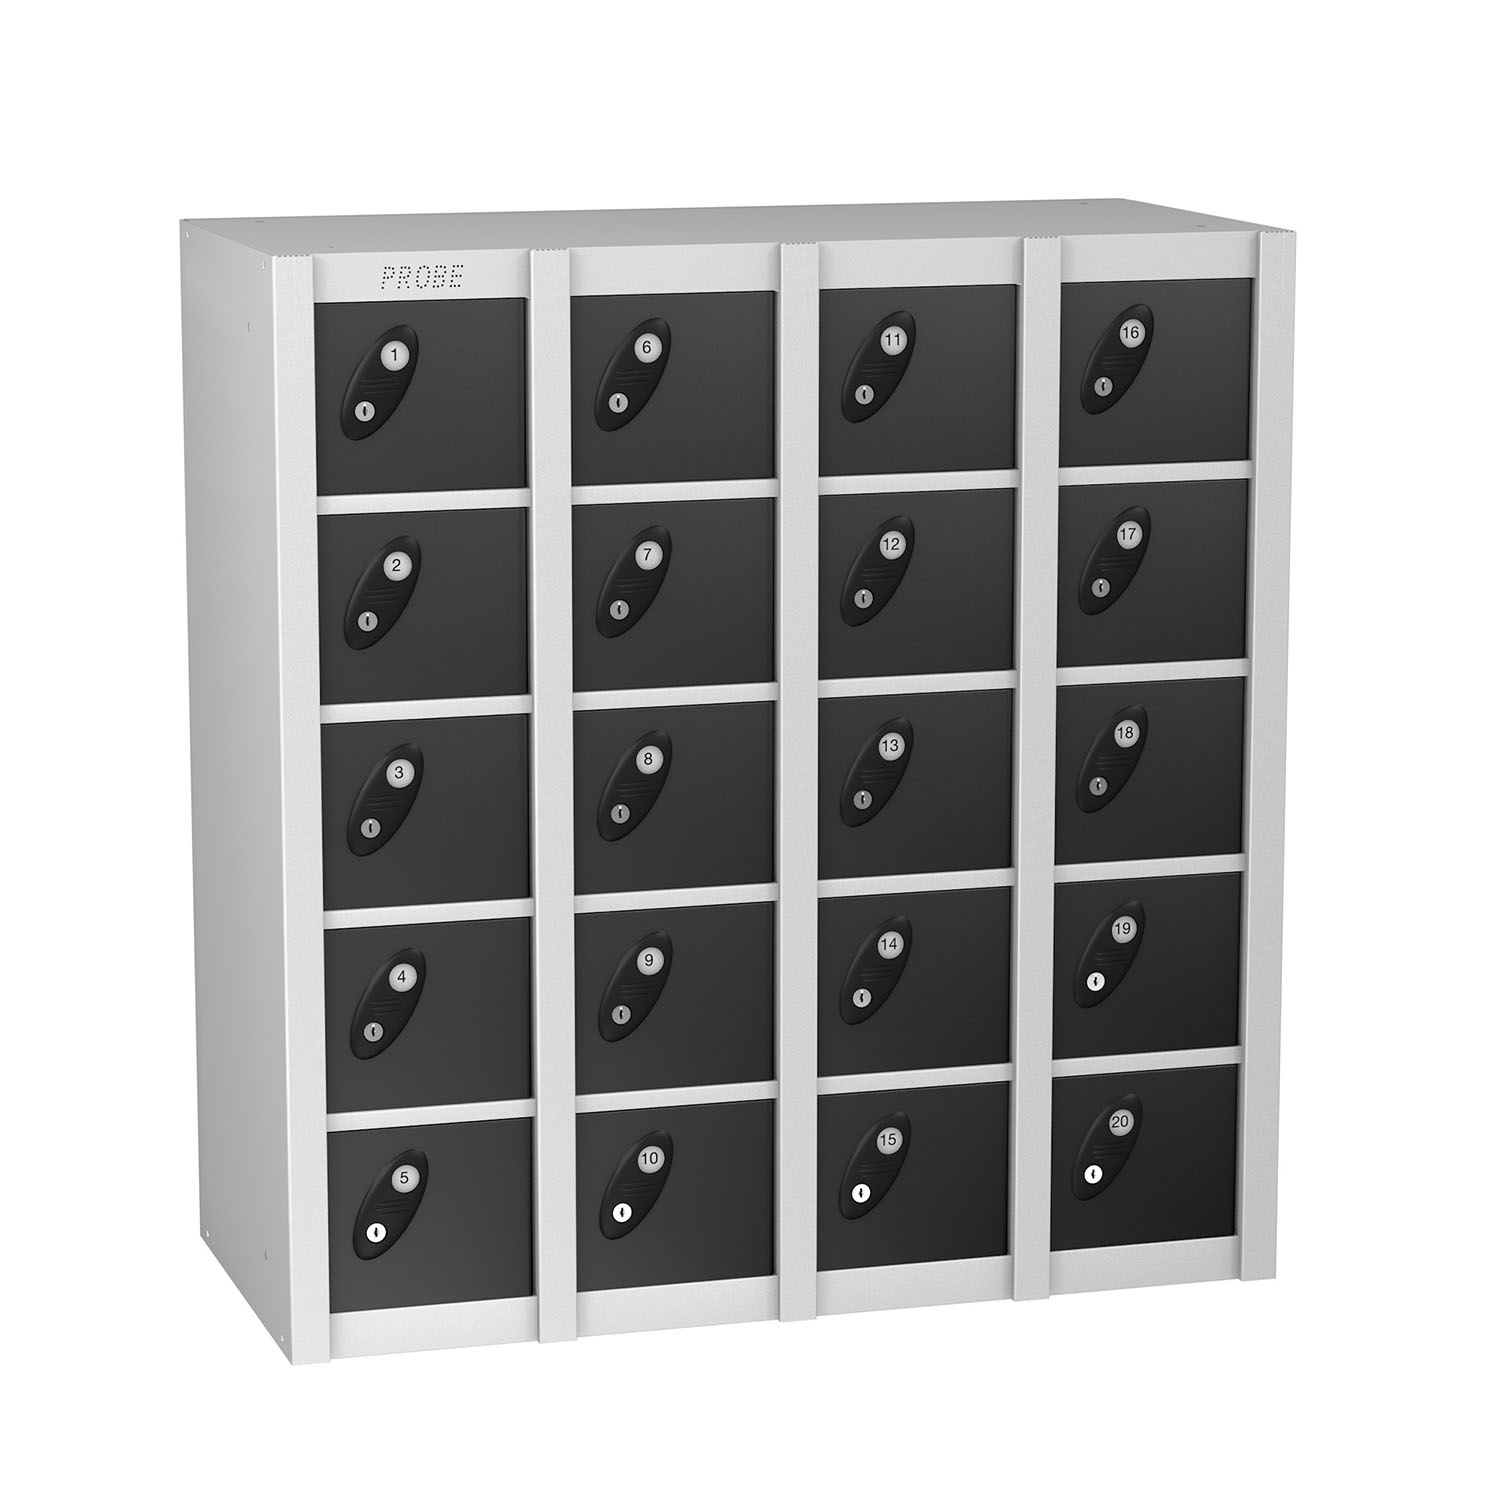 Probe 20 doors minibox lockers in black colour